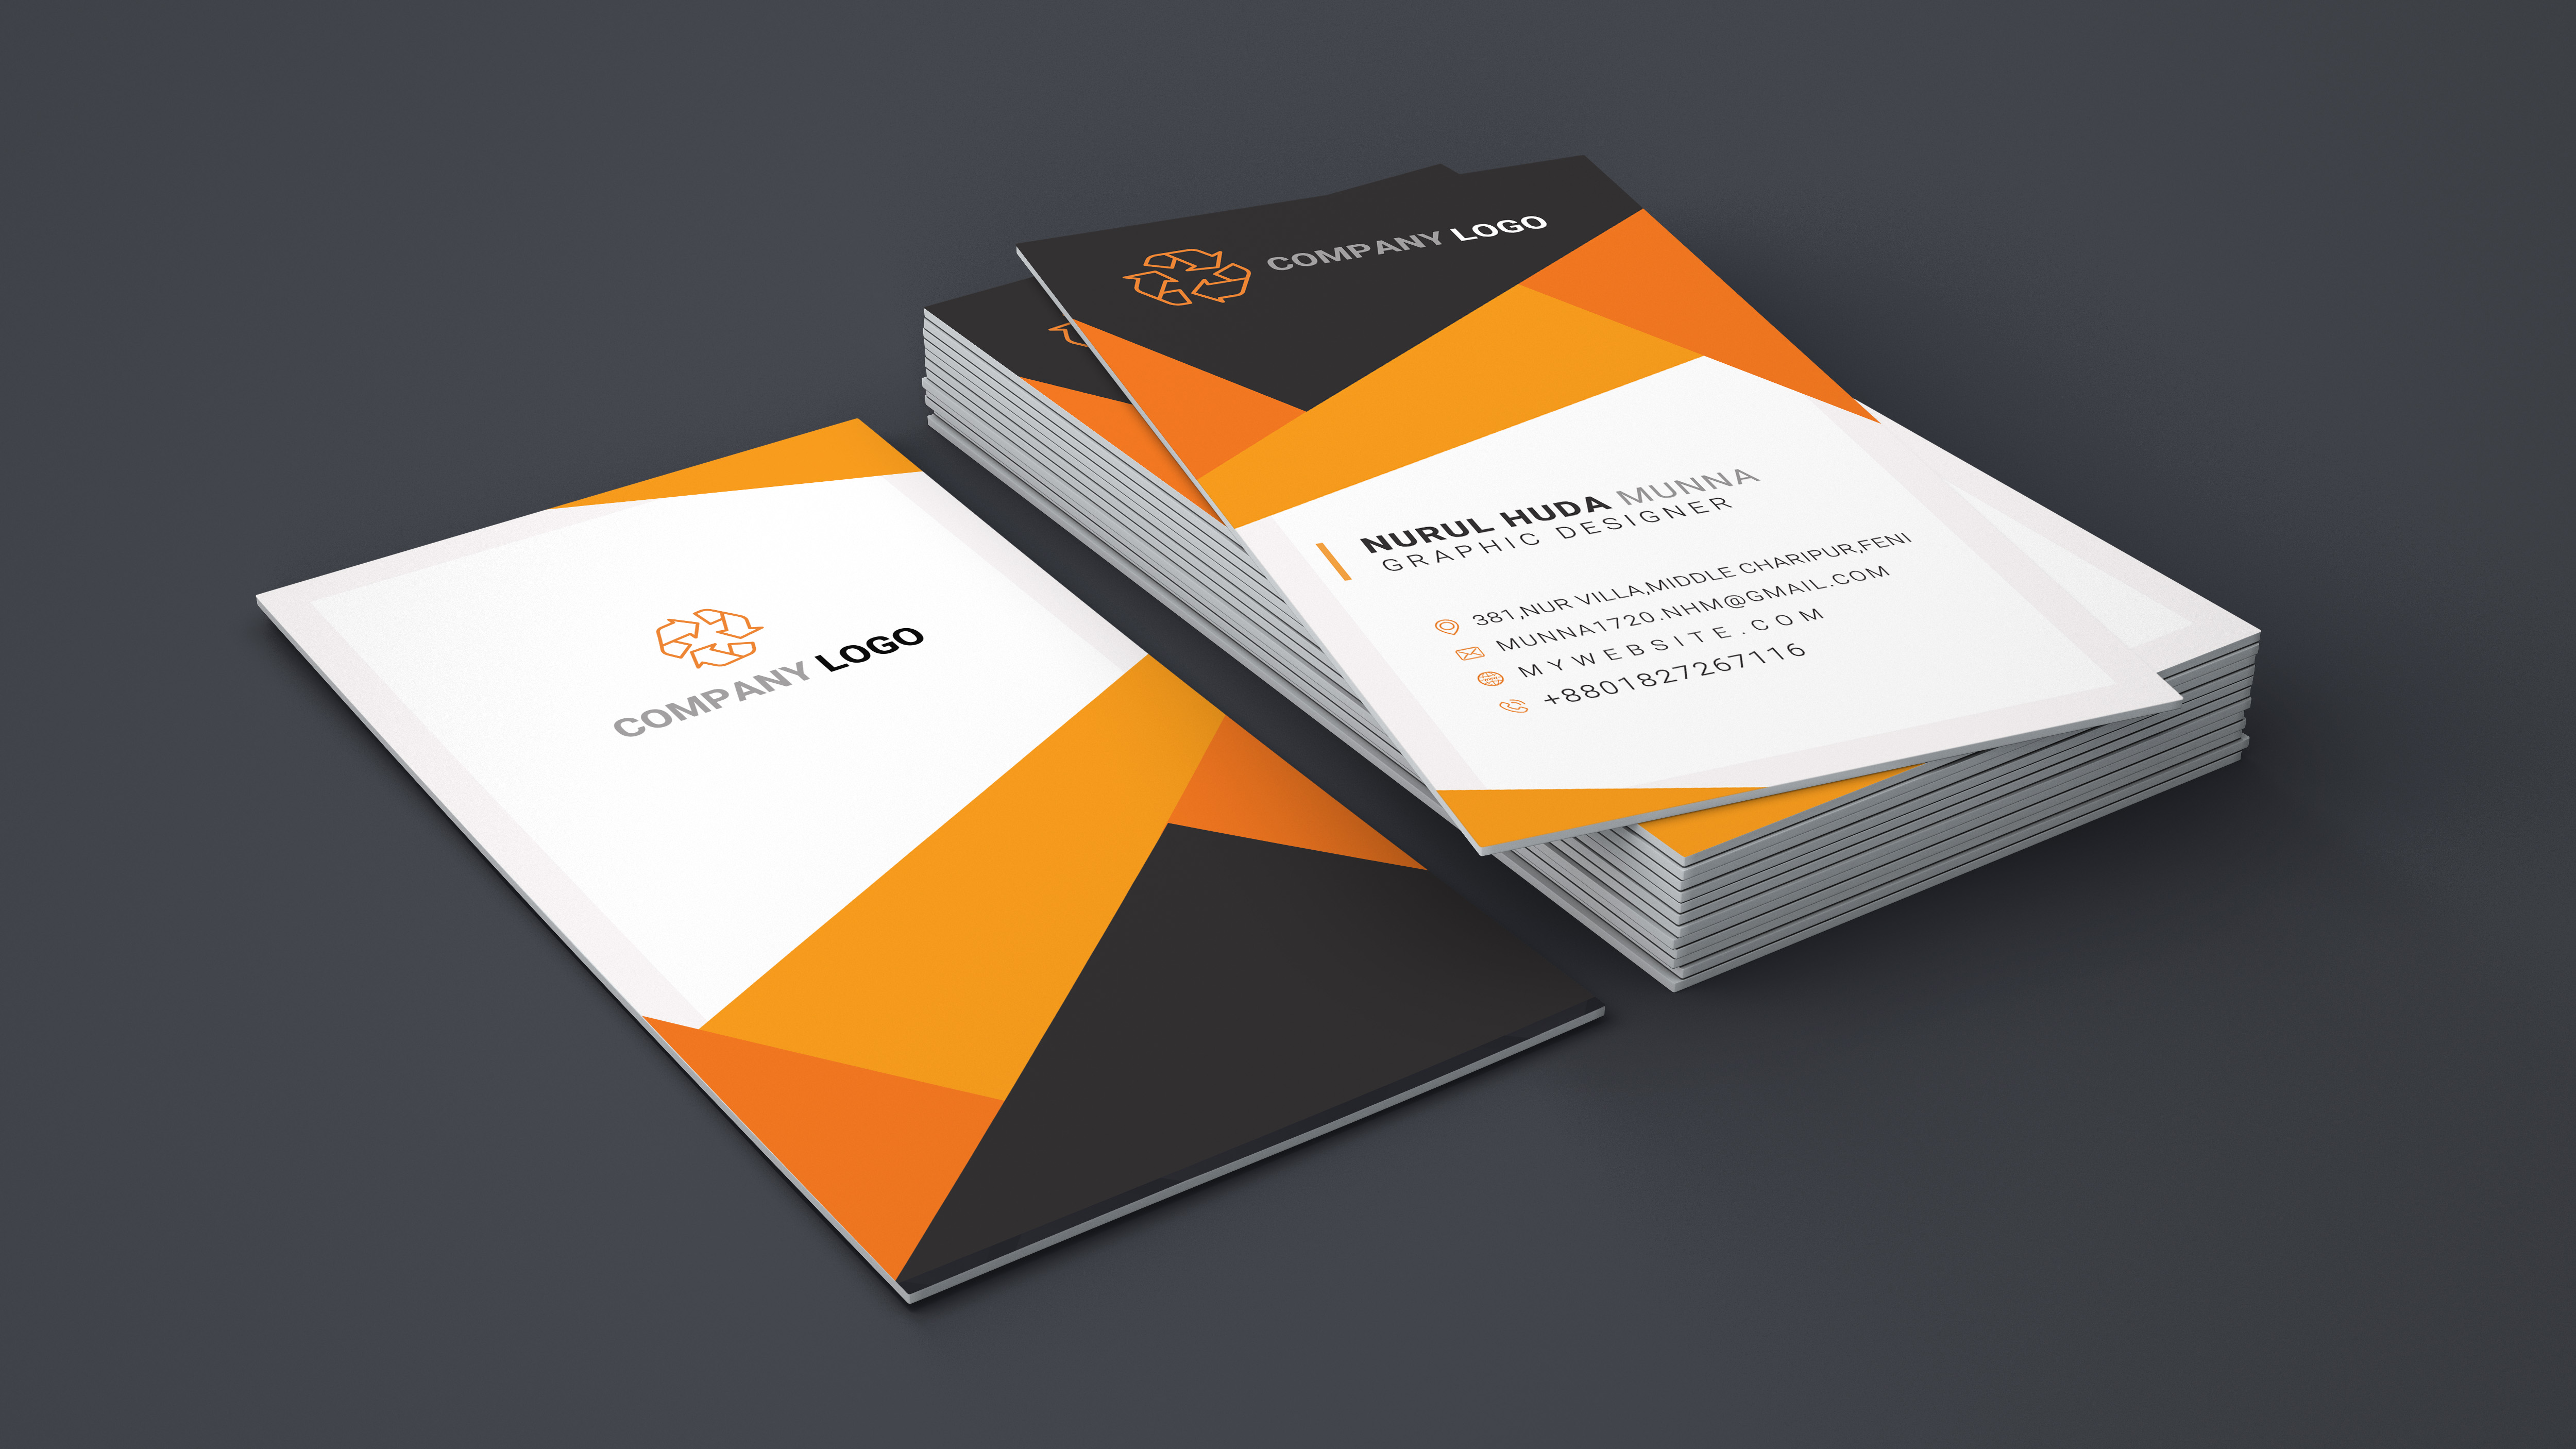 I will design professional creative business card